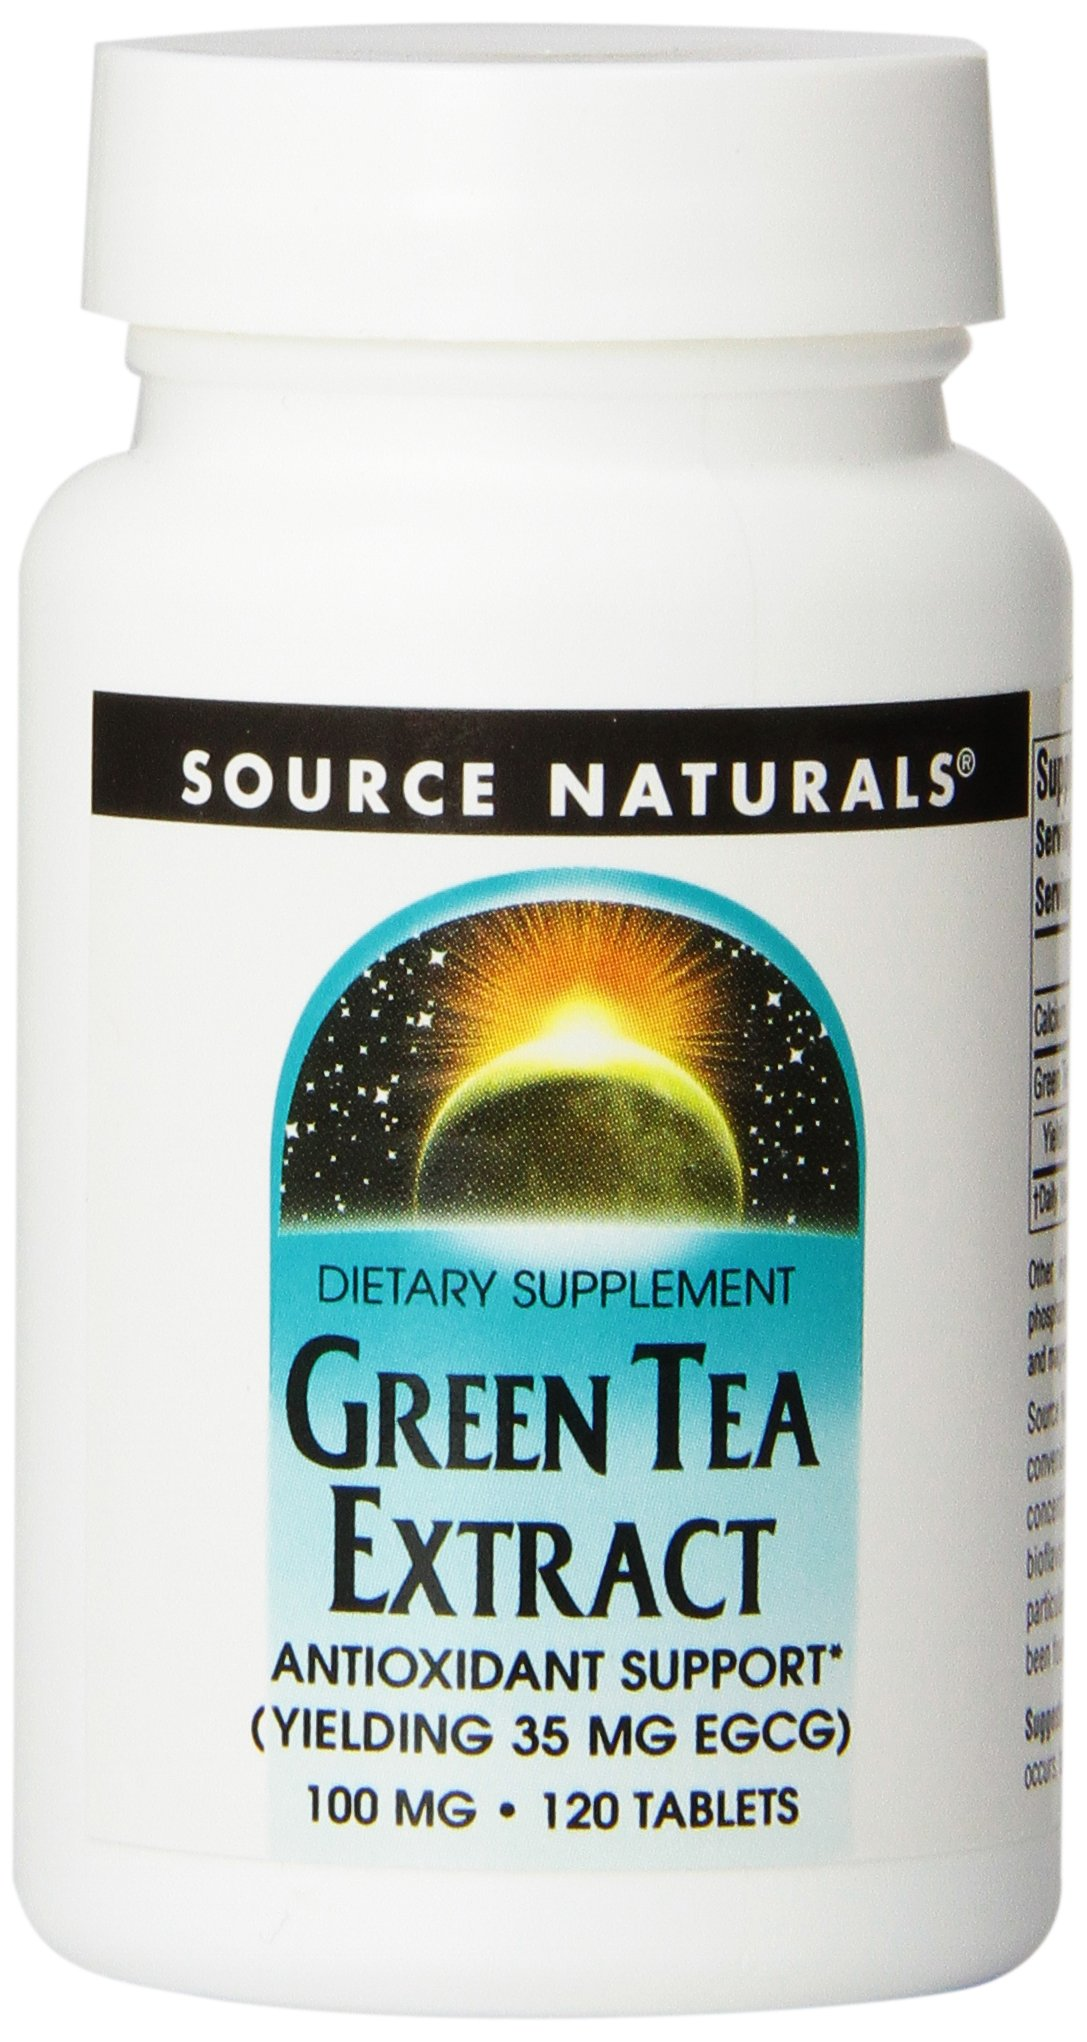 Source Naturals Green Tea Extract, 100 Mg, 120 Tablets